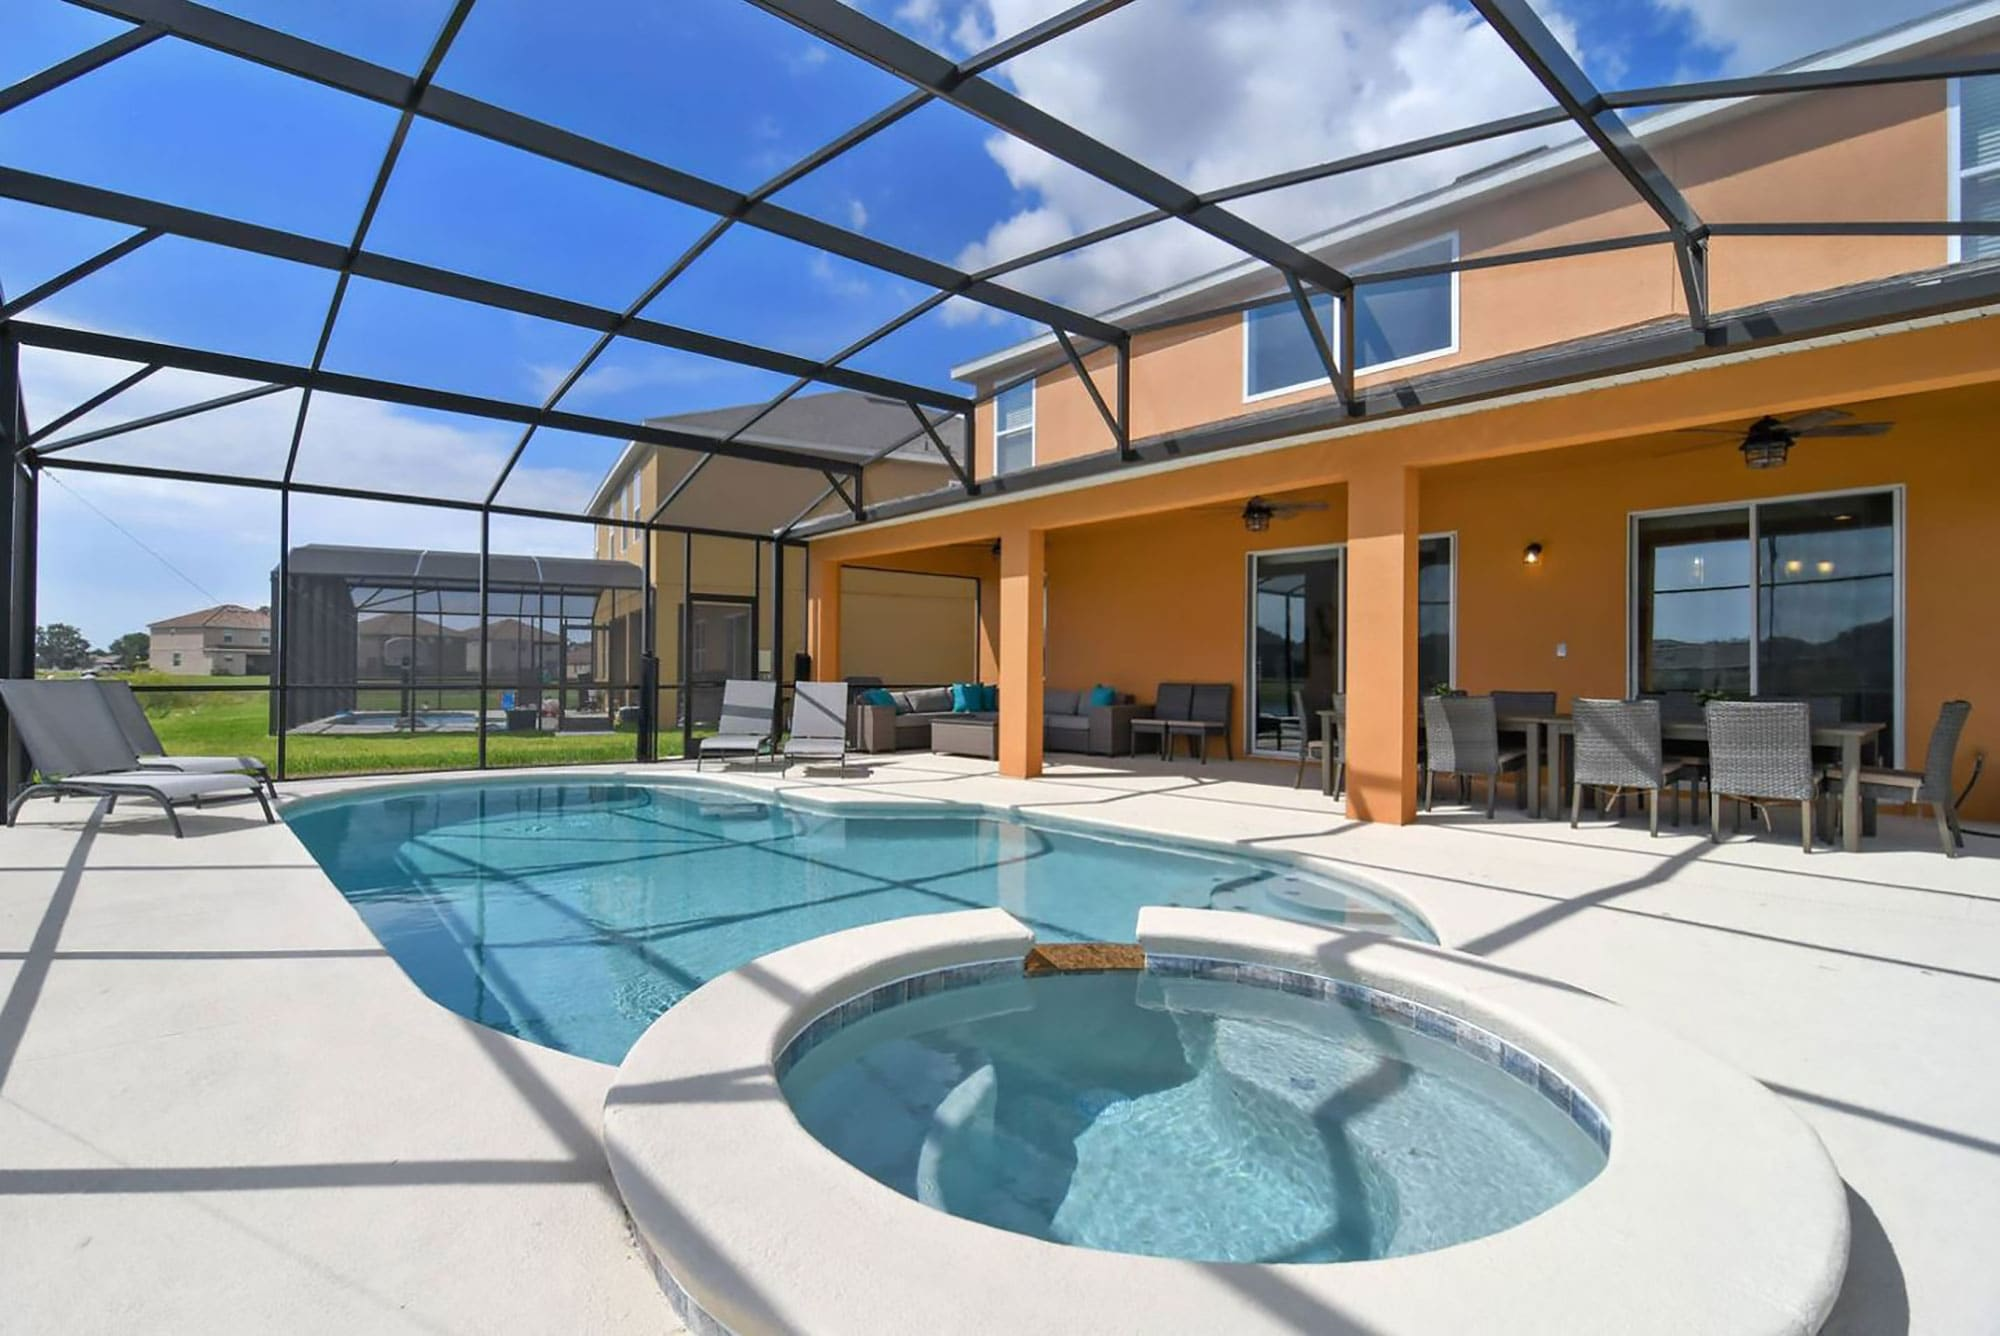 Pool and hot tub area of two story vacation rental home managed by An Owners Dream Management in Davenport